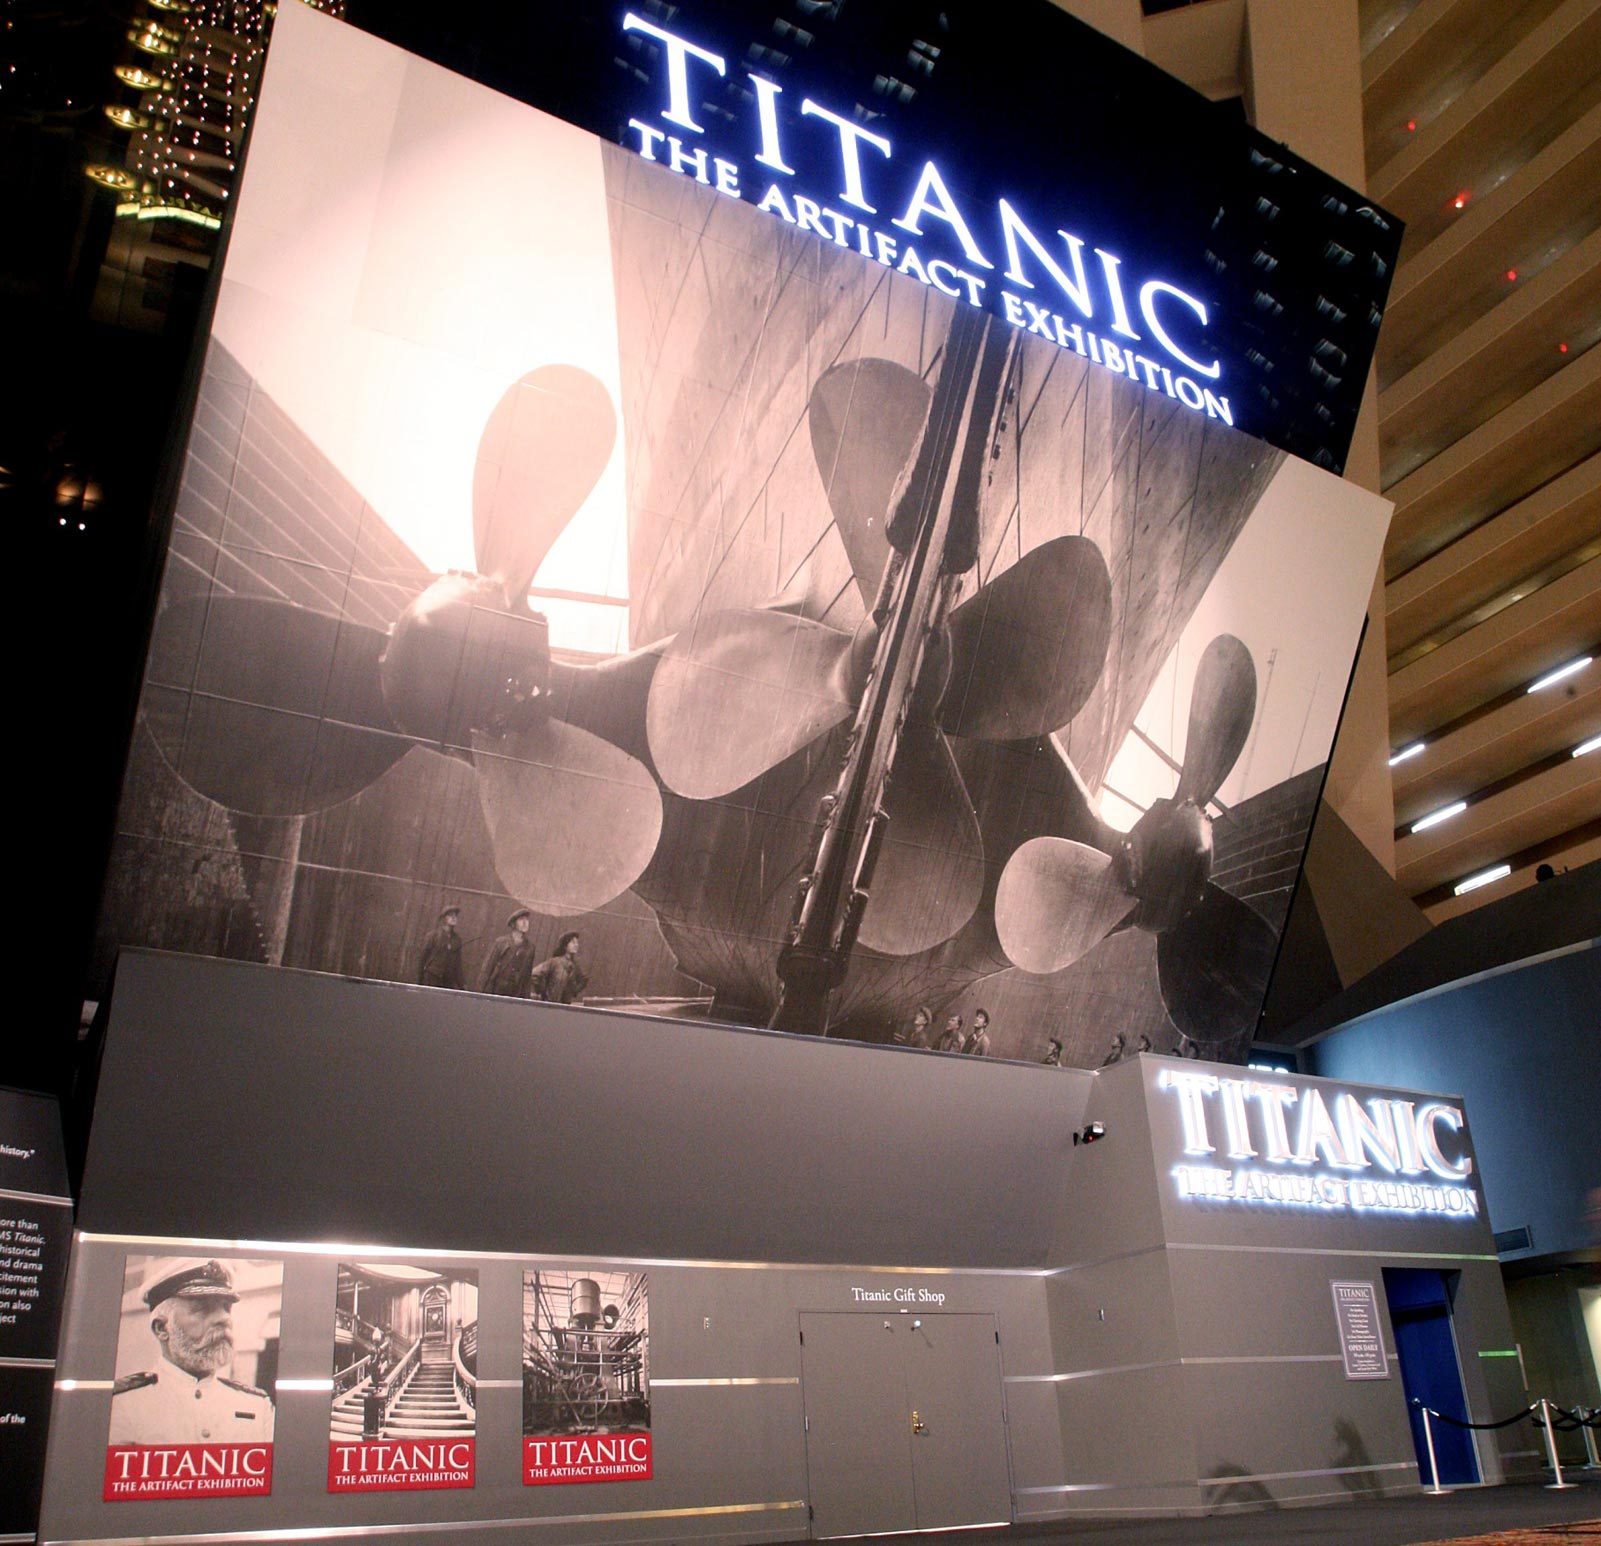 Luxor Titanic Exhibit